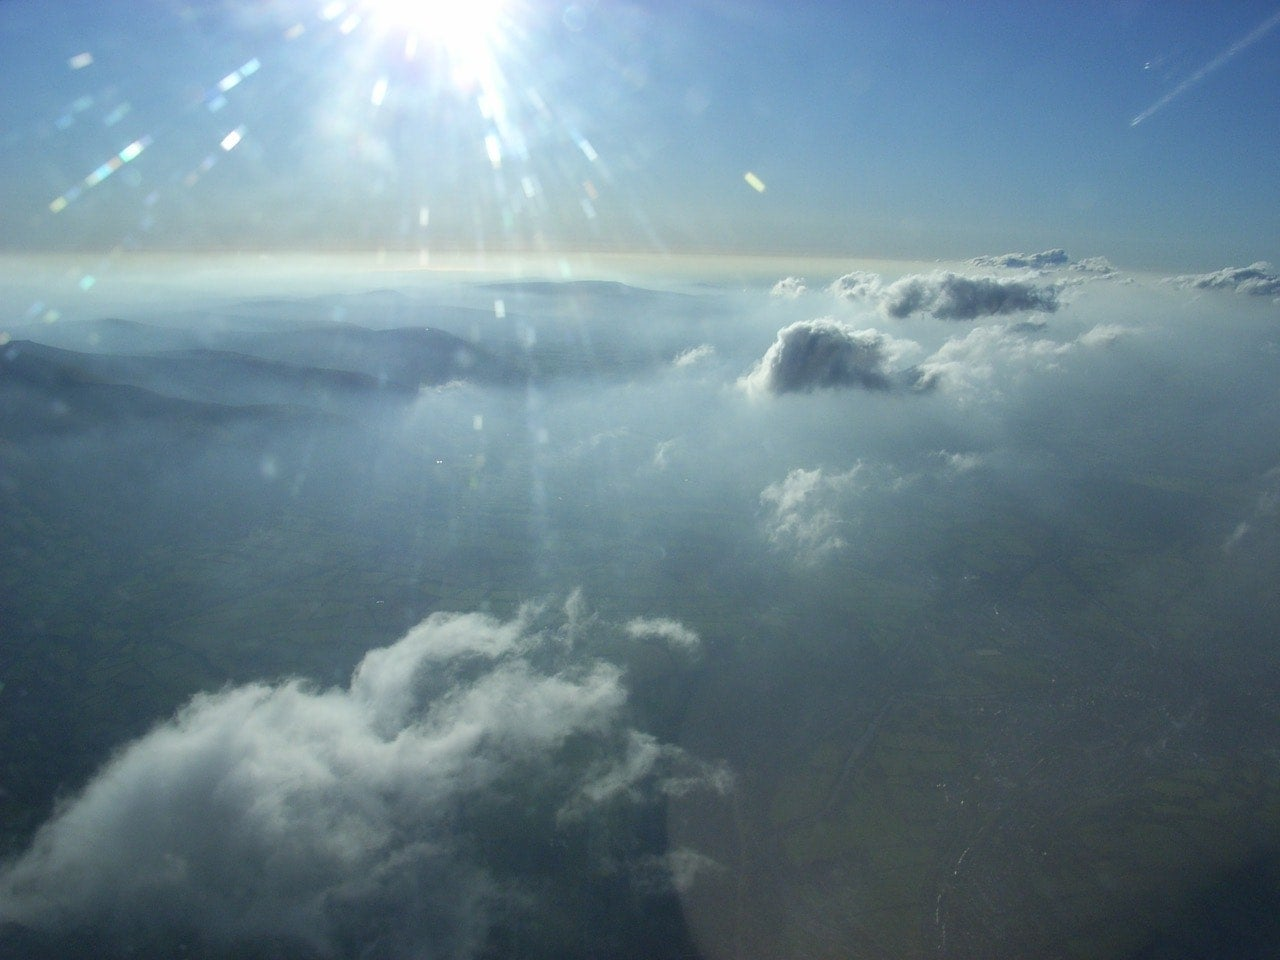 10,000 feet above the Black Mountains in Wales